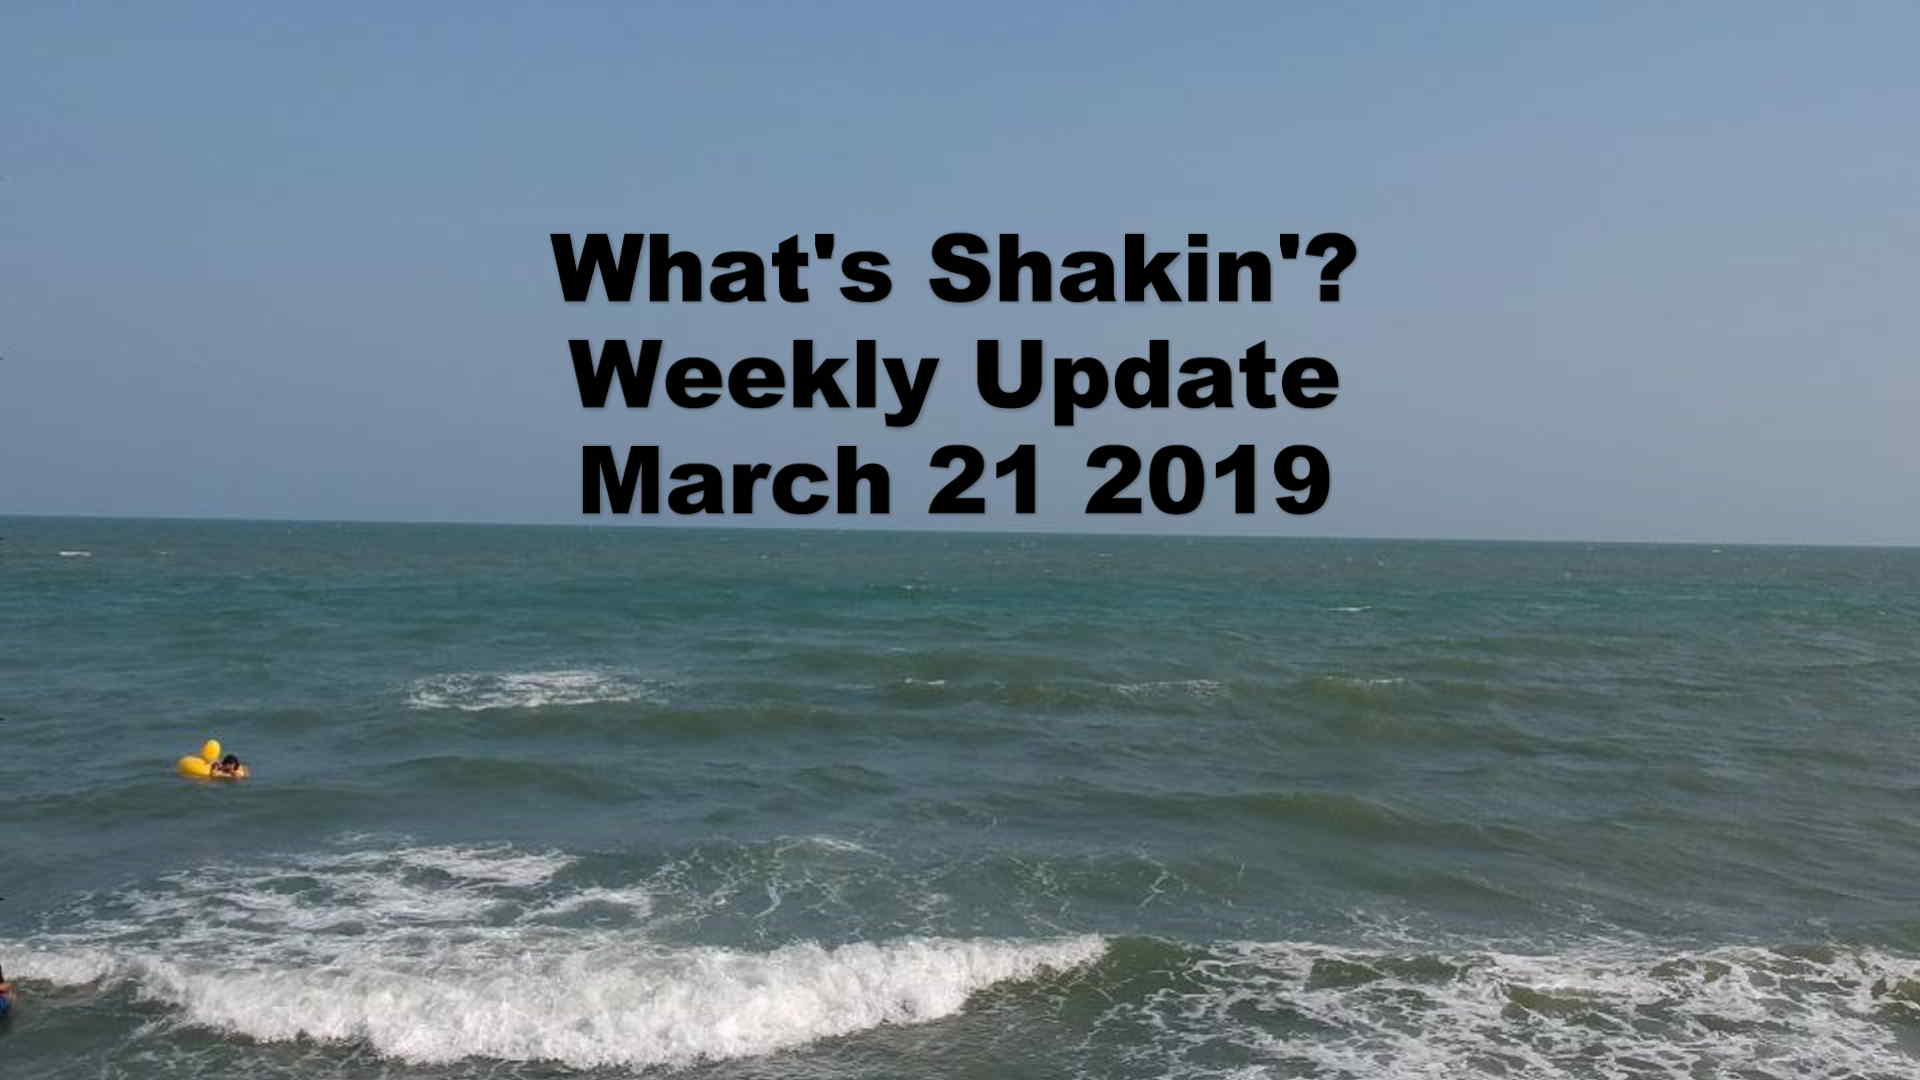 What's Shakn'? Week March 21 2019